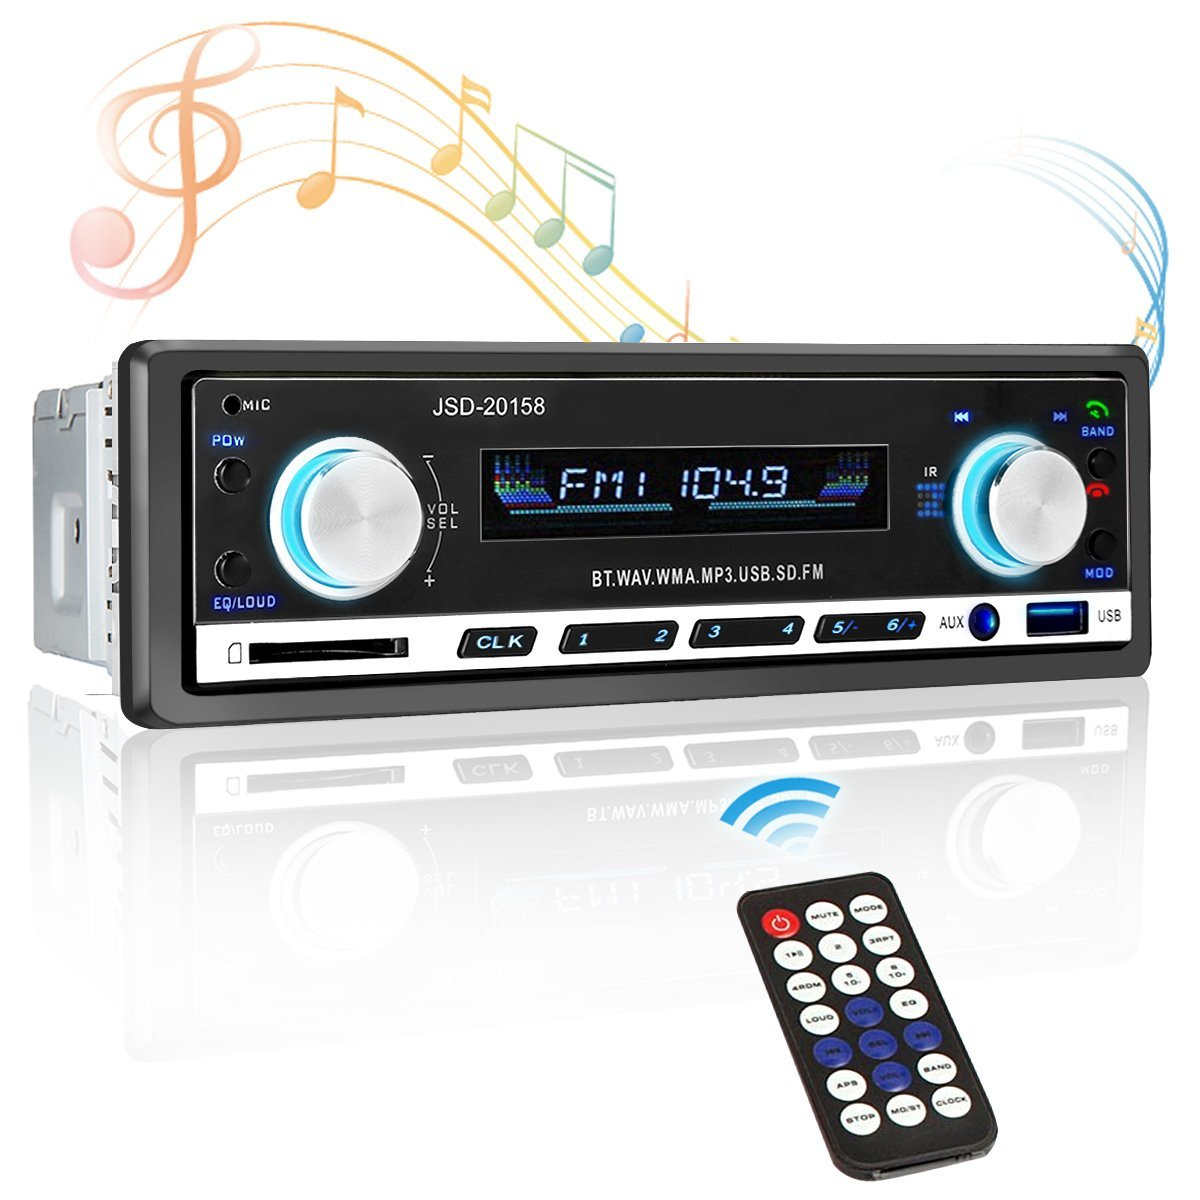 Car stereo receiver,Car radio receiver,Single Din,Bluetooth Car stereo,TVIRD Universal Din Car Radio Receiver MP3 Player/USB/SD Card/AUX/FM Radio with Wireless Remote Control (Black 1)